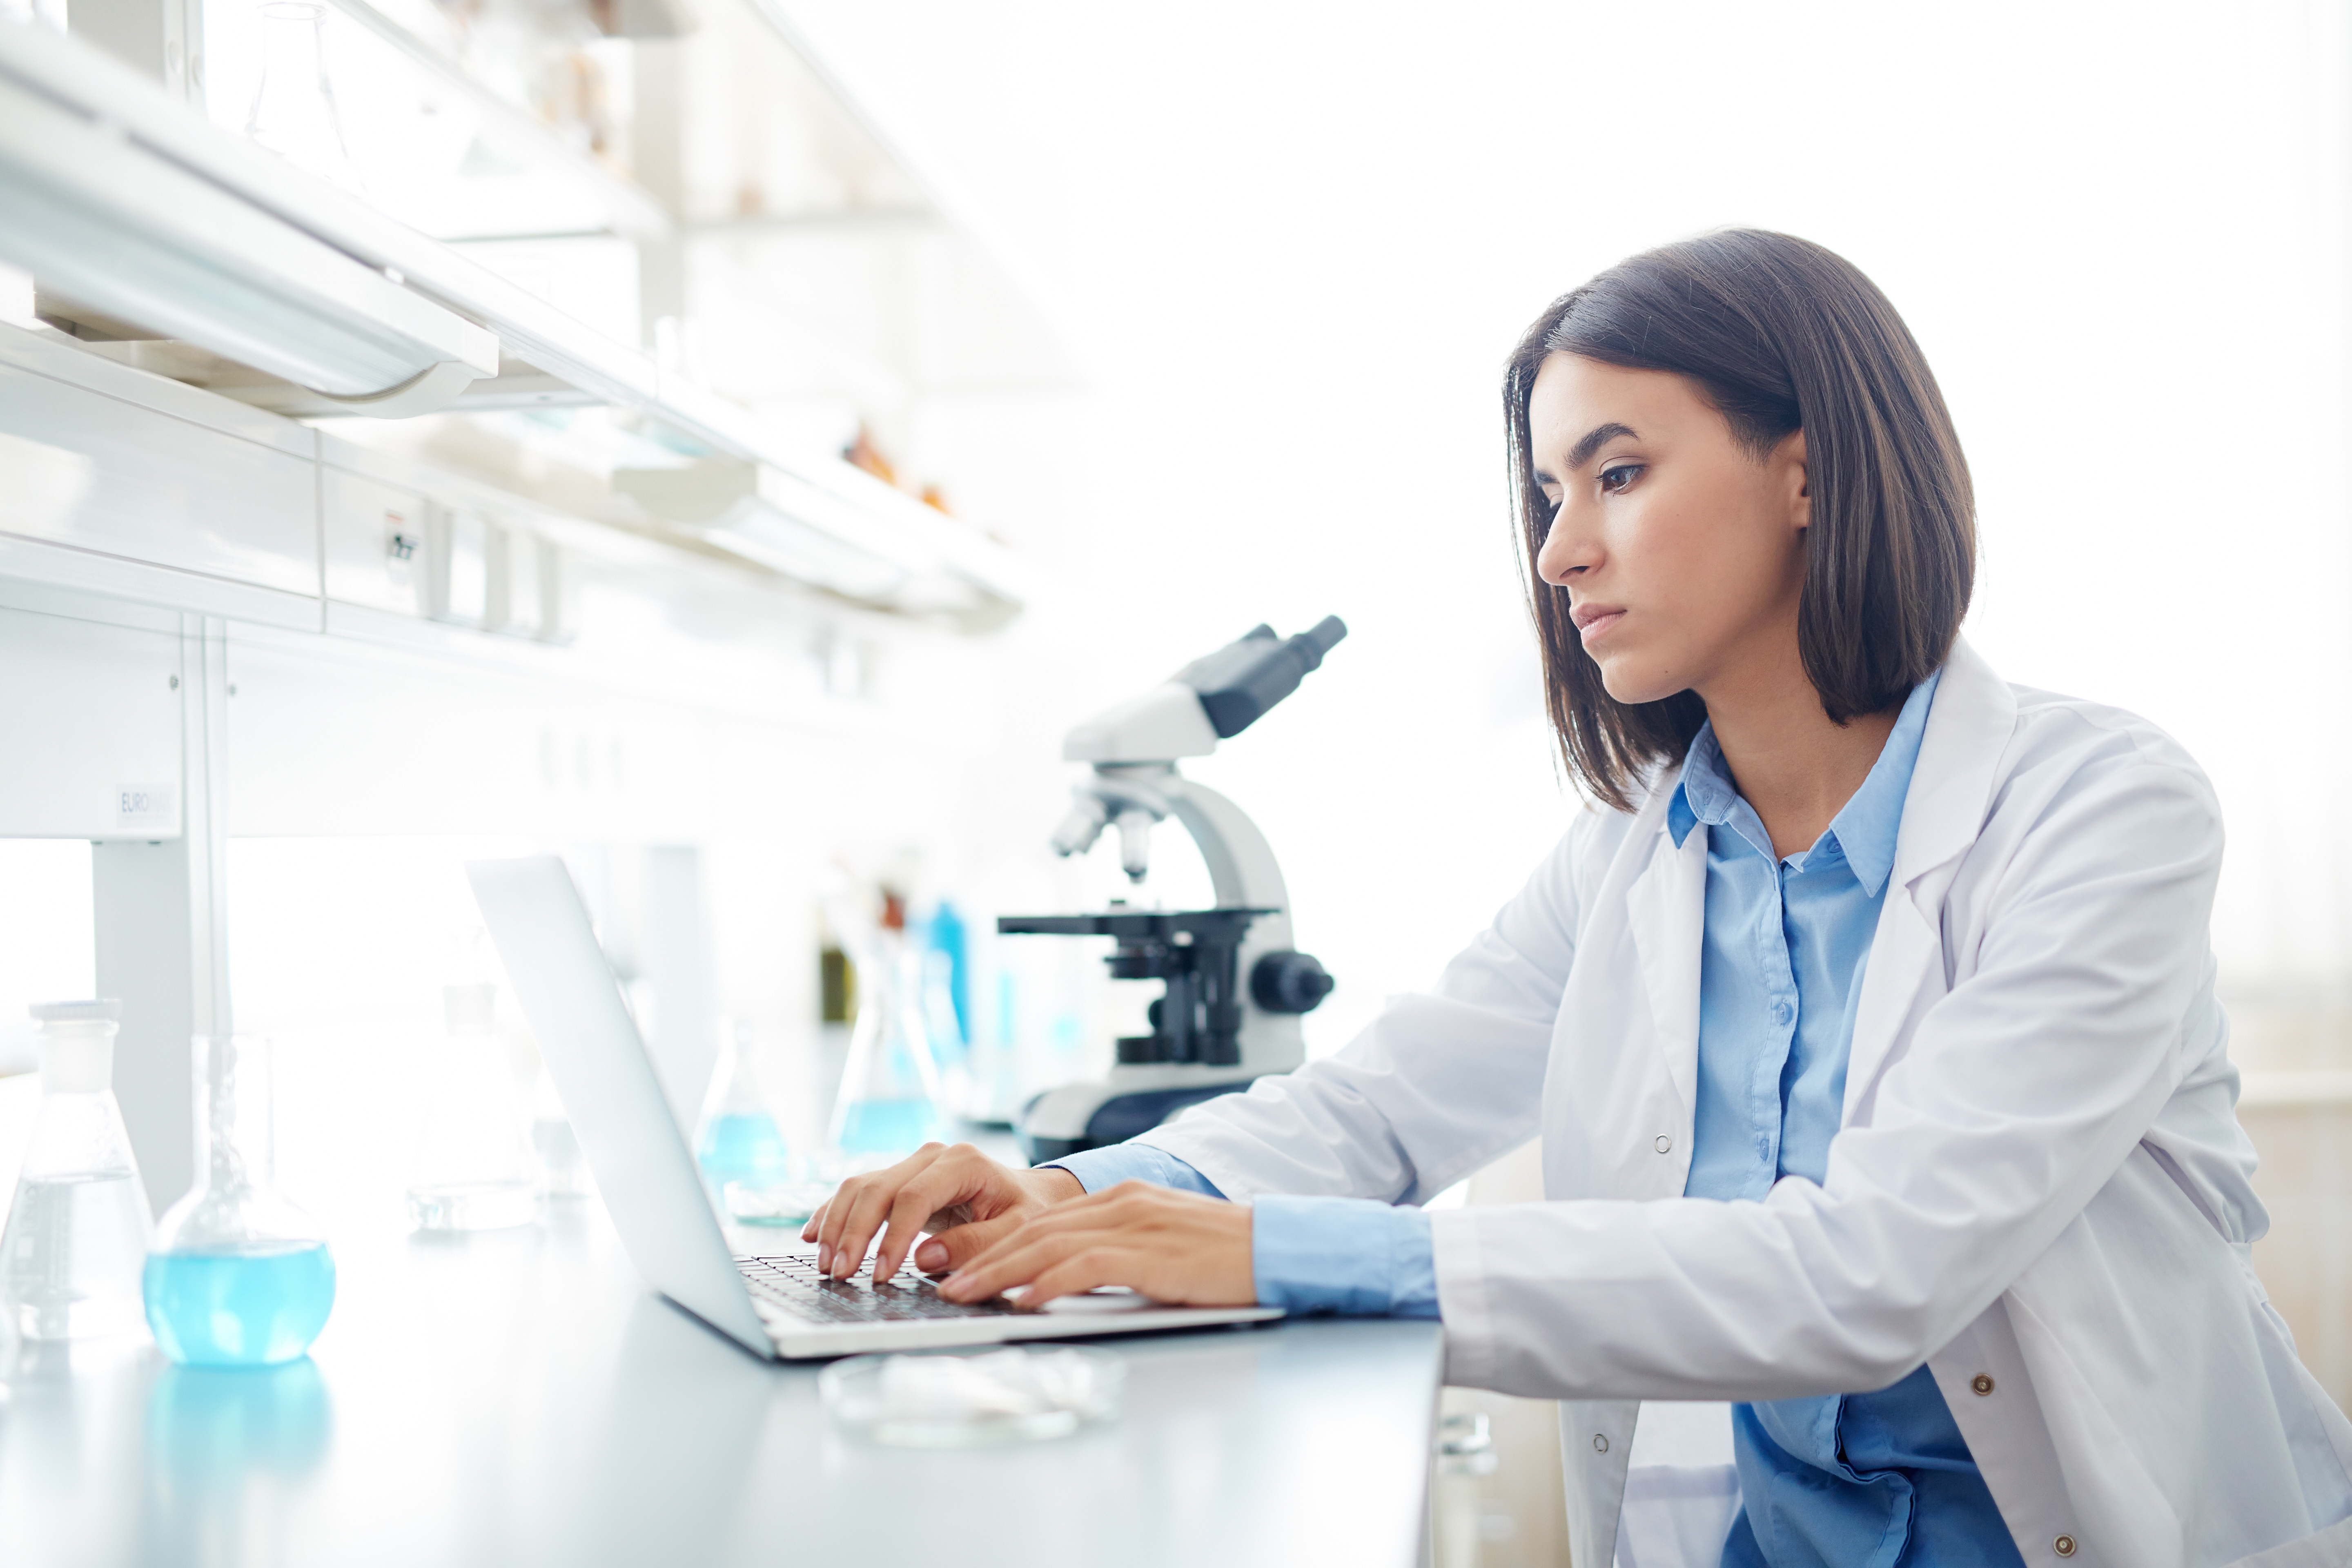 a woman scientist typing on laptop in a lab with a microscope next to her